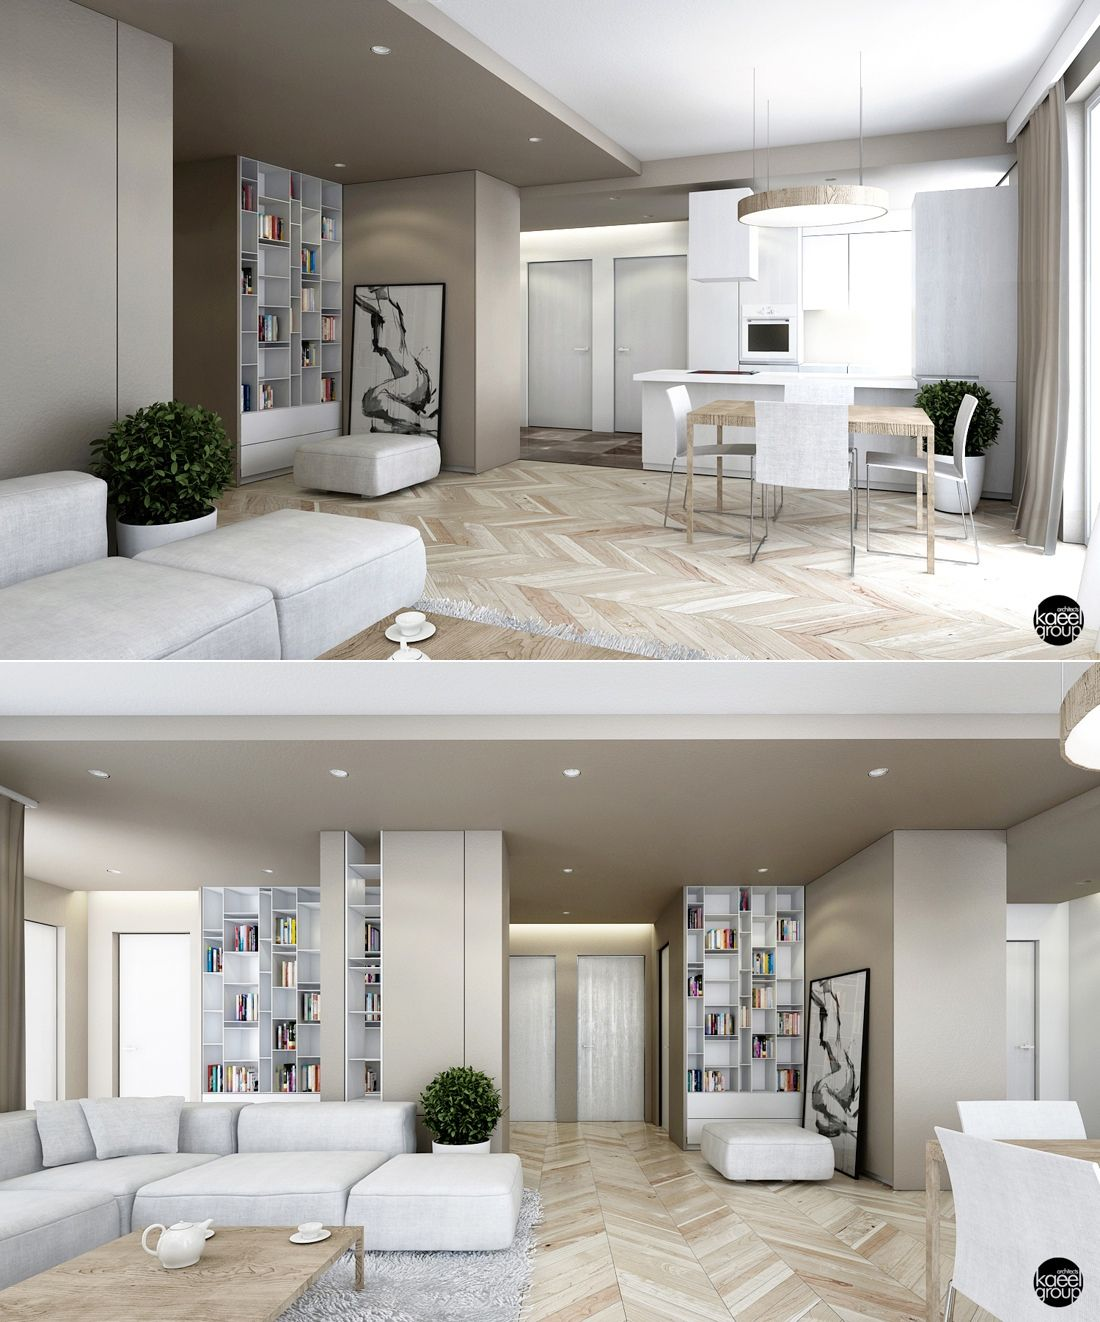 23 open concept apartment interiors for inspiration ceilings